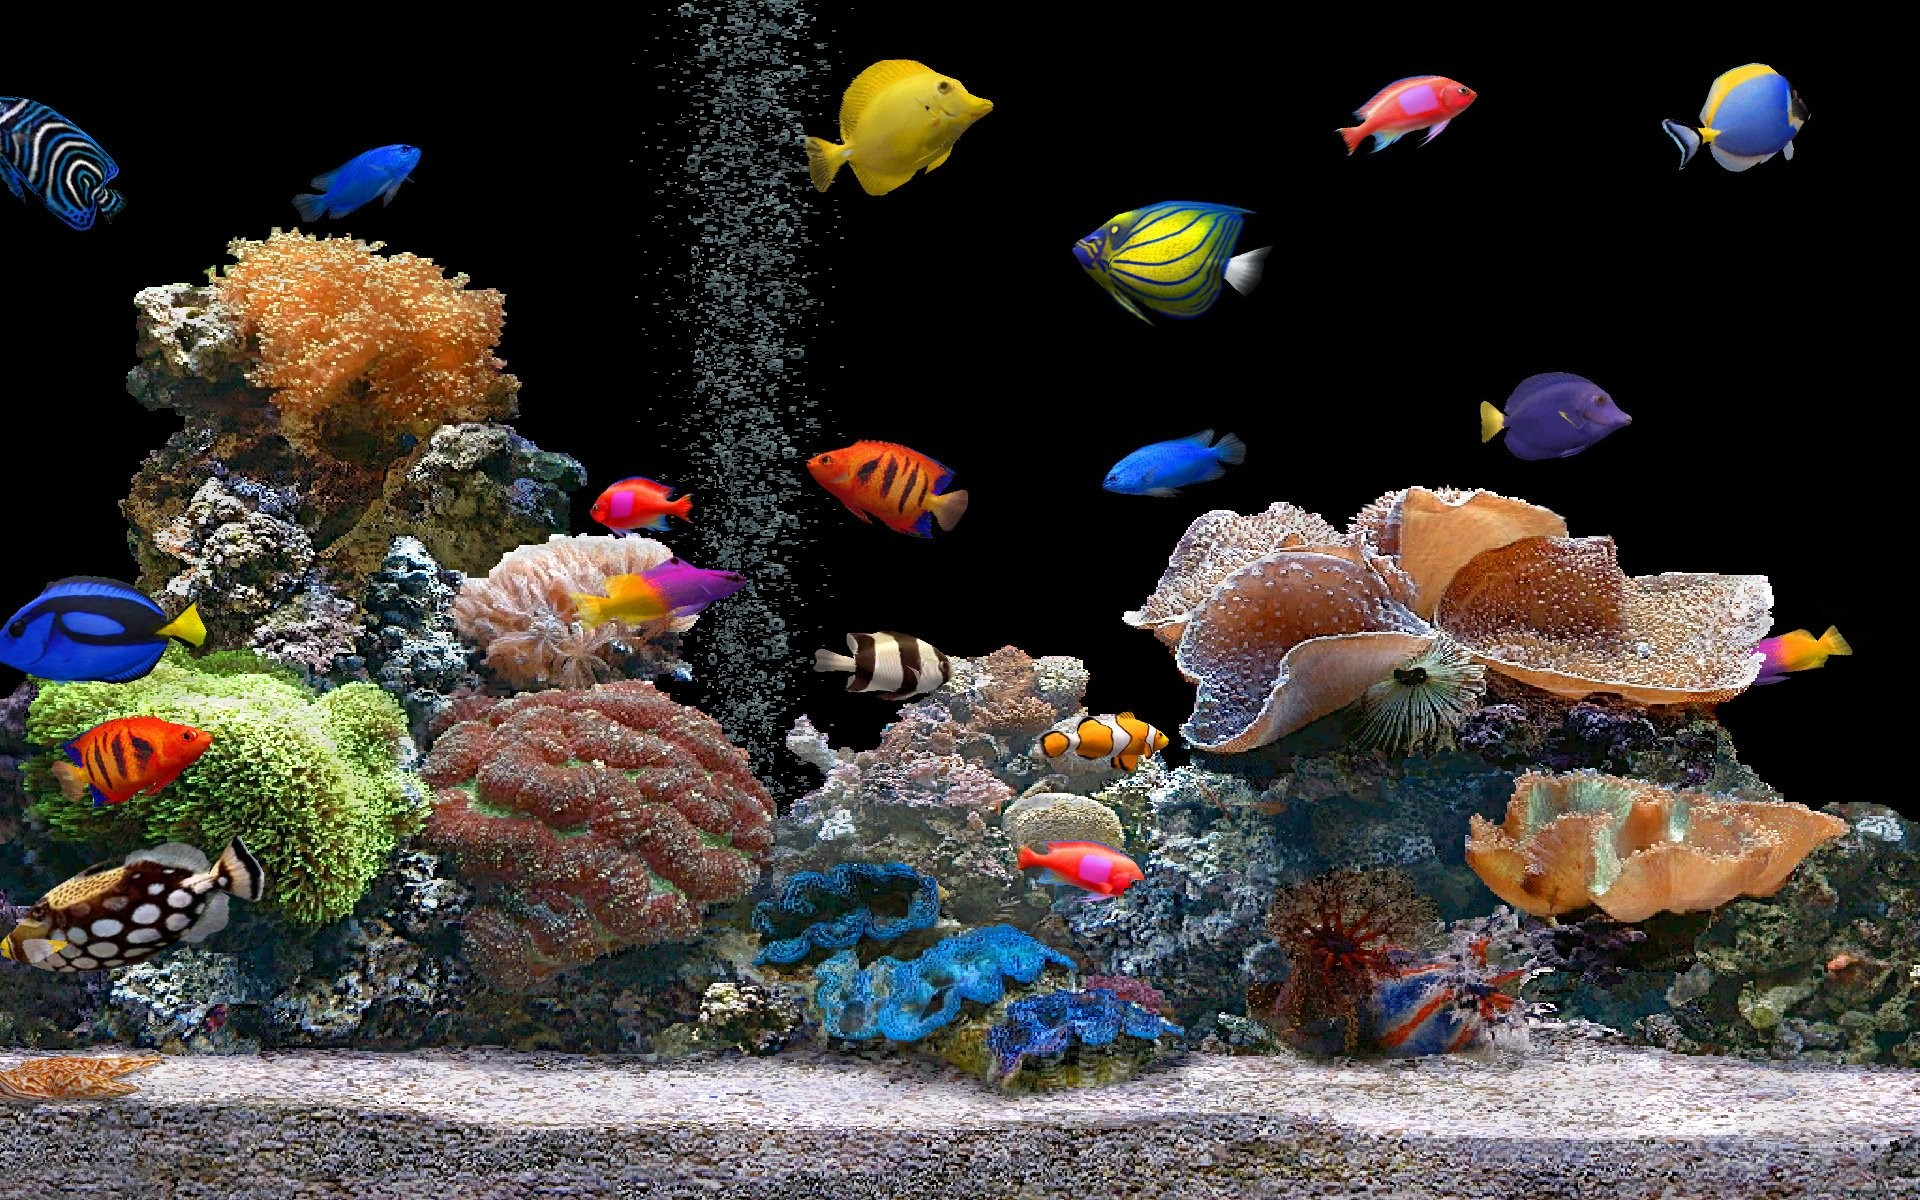 Aquarium wallpaper – 120085